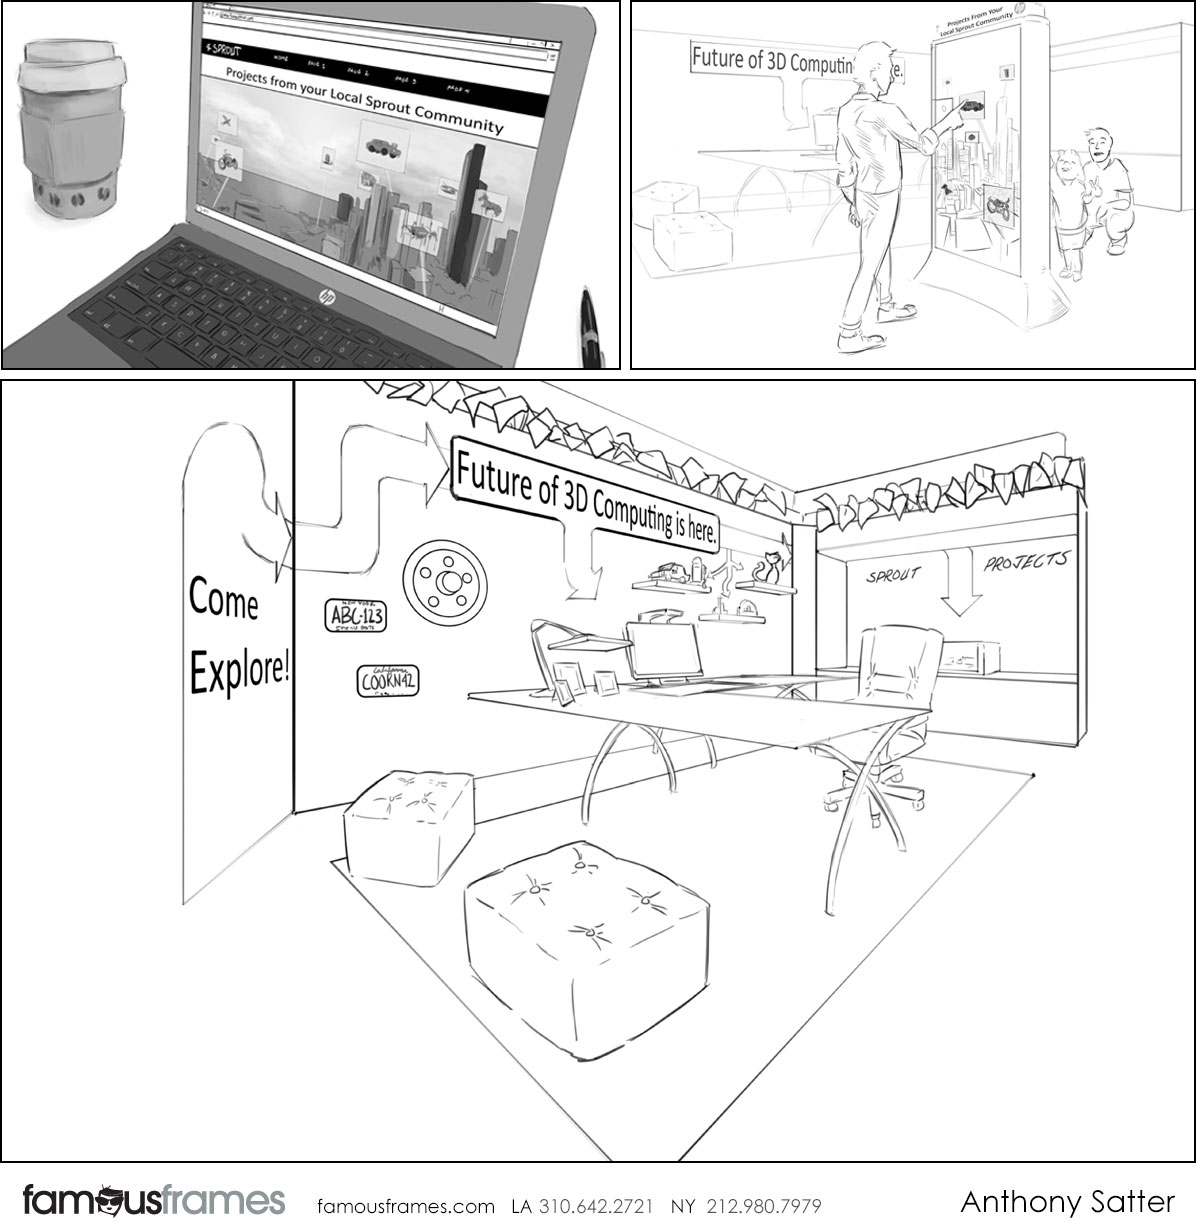 Anthony Satter's Events / Displays storyboard art (Image #6814_41_1538165755)